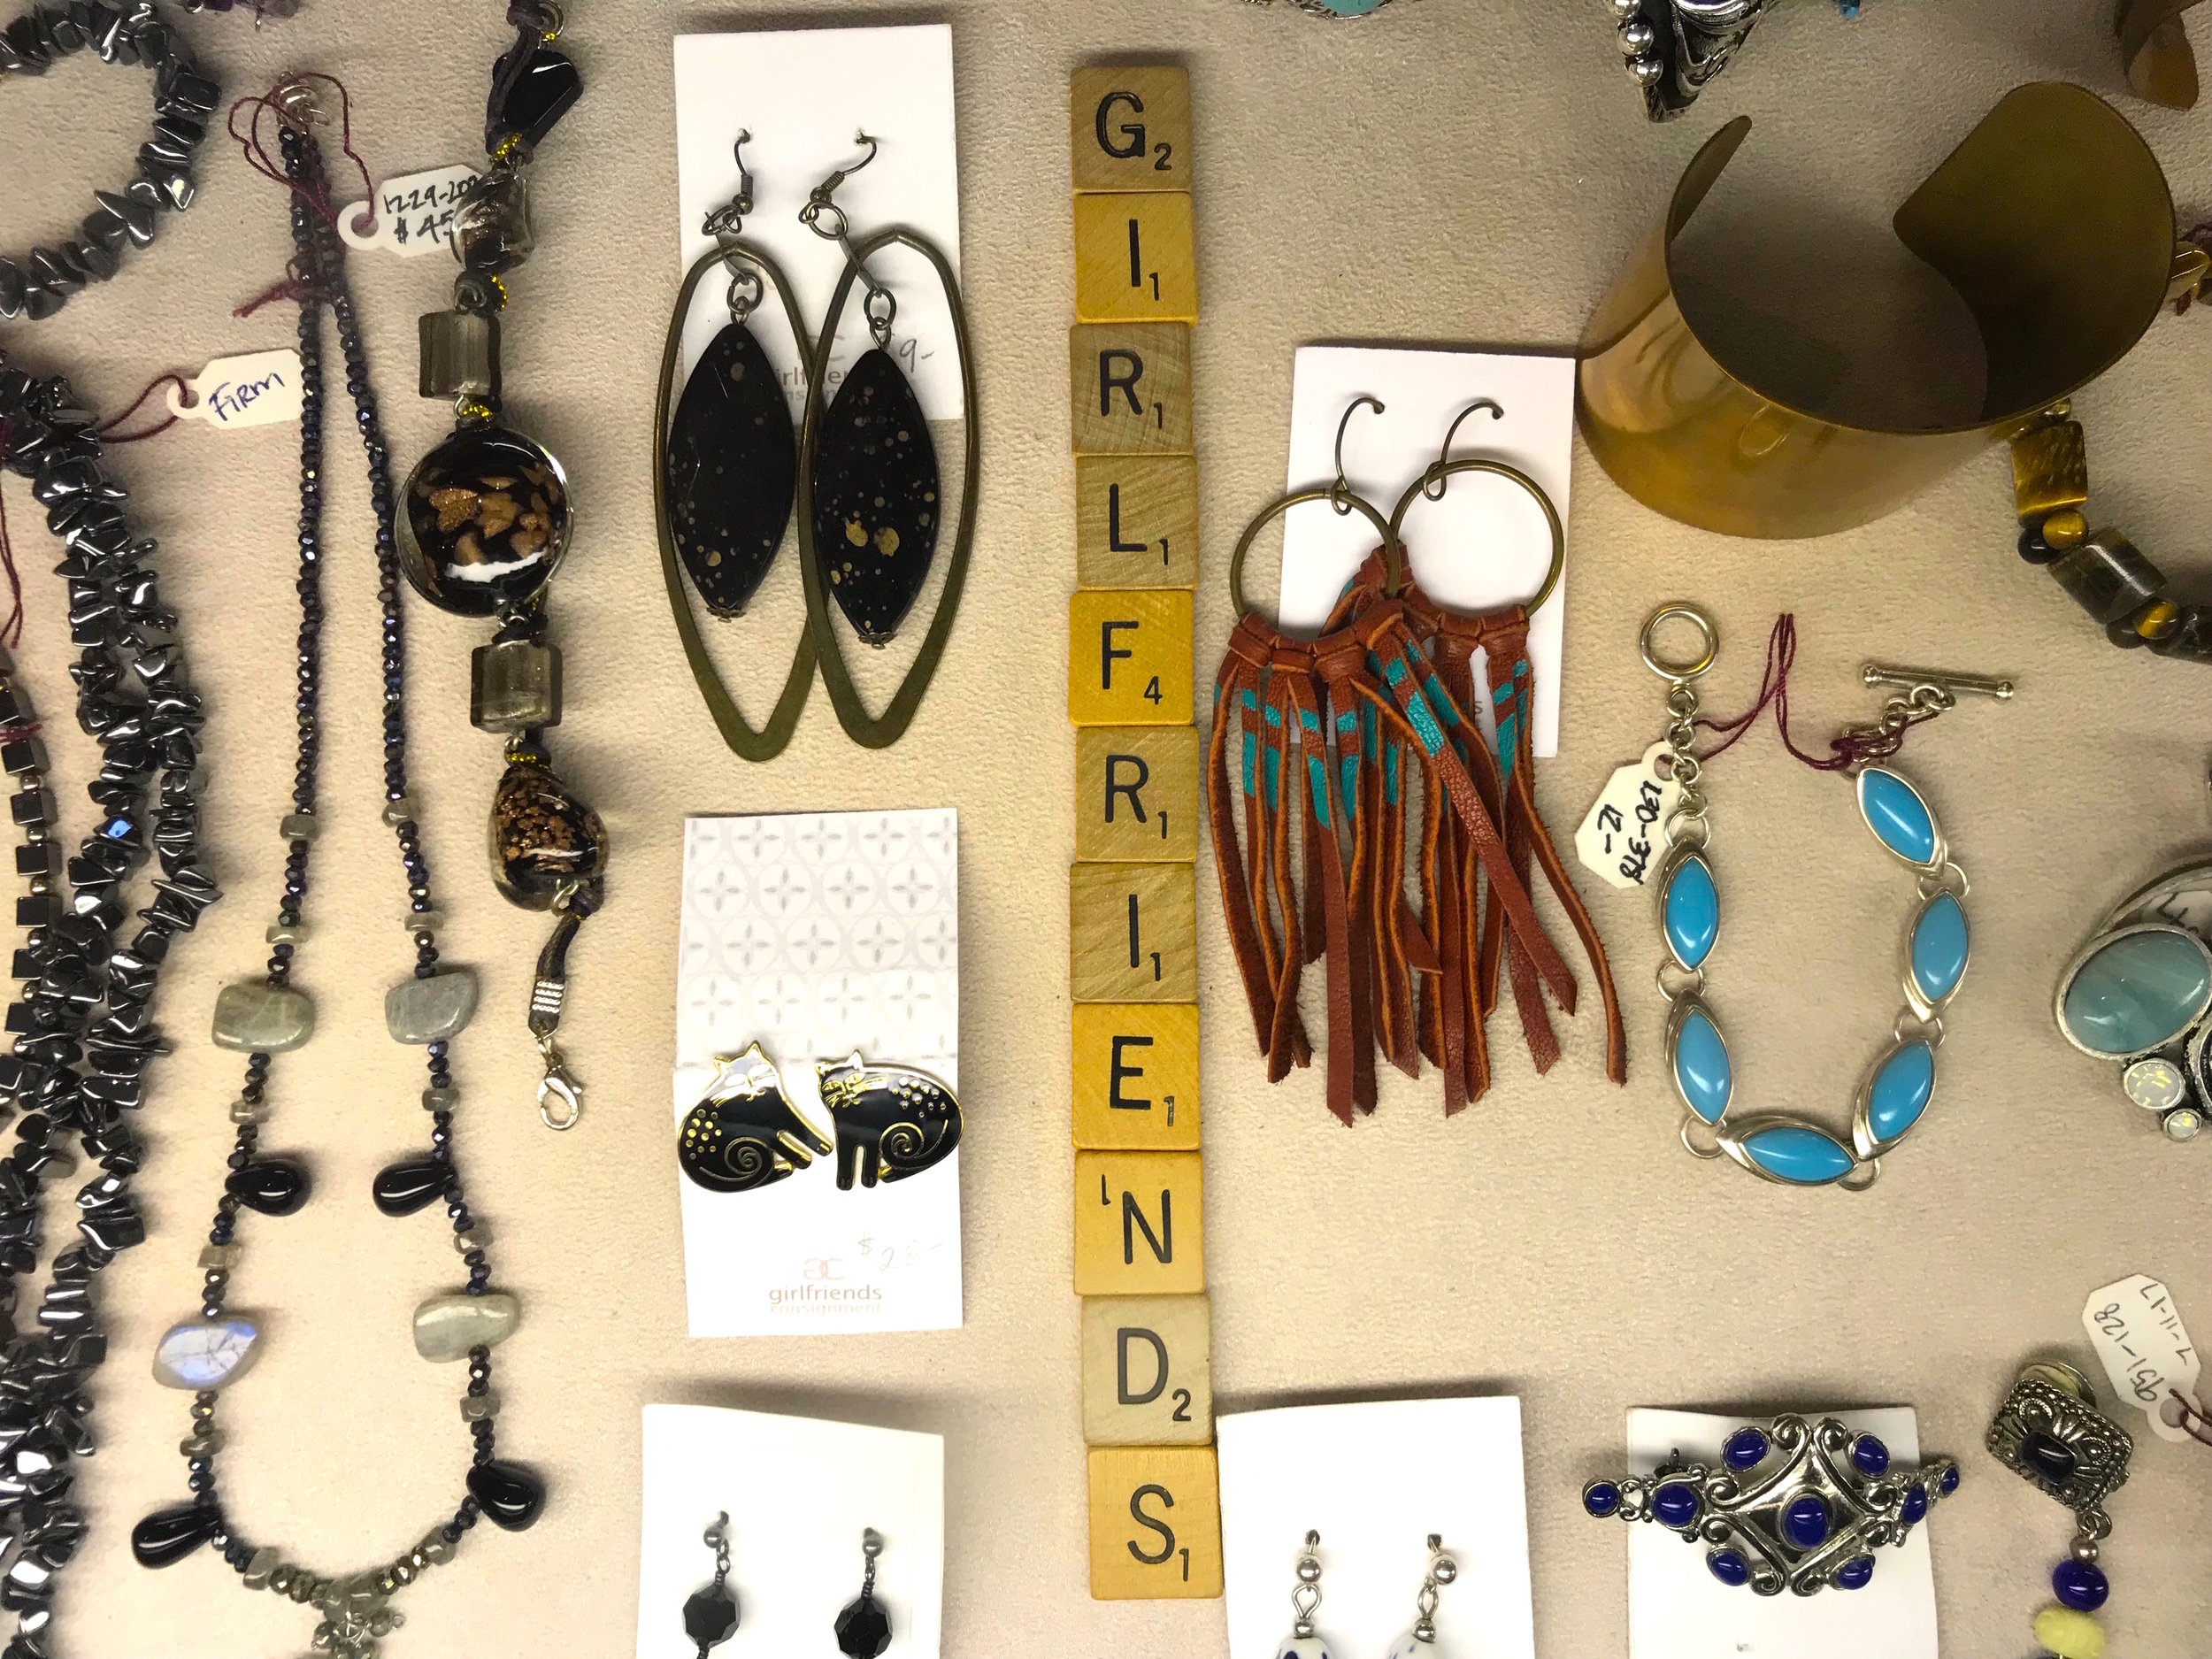 Girlfriends Consignment Store